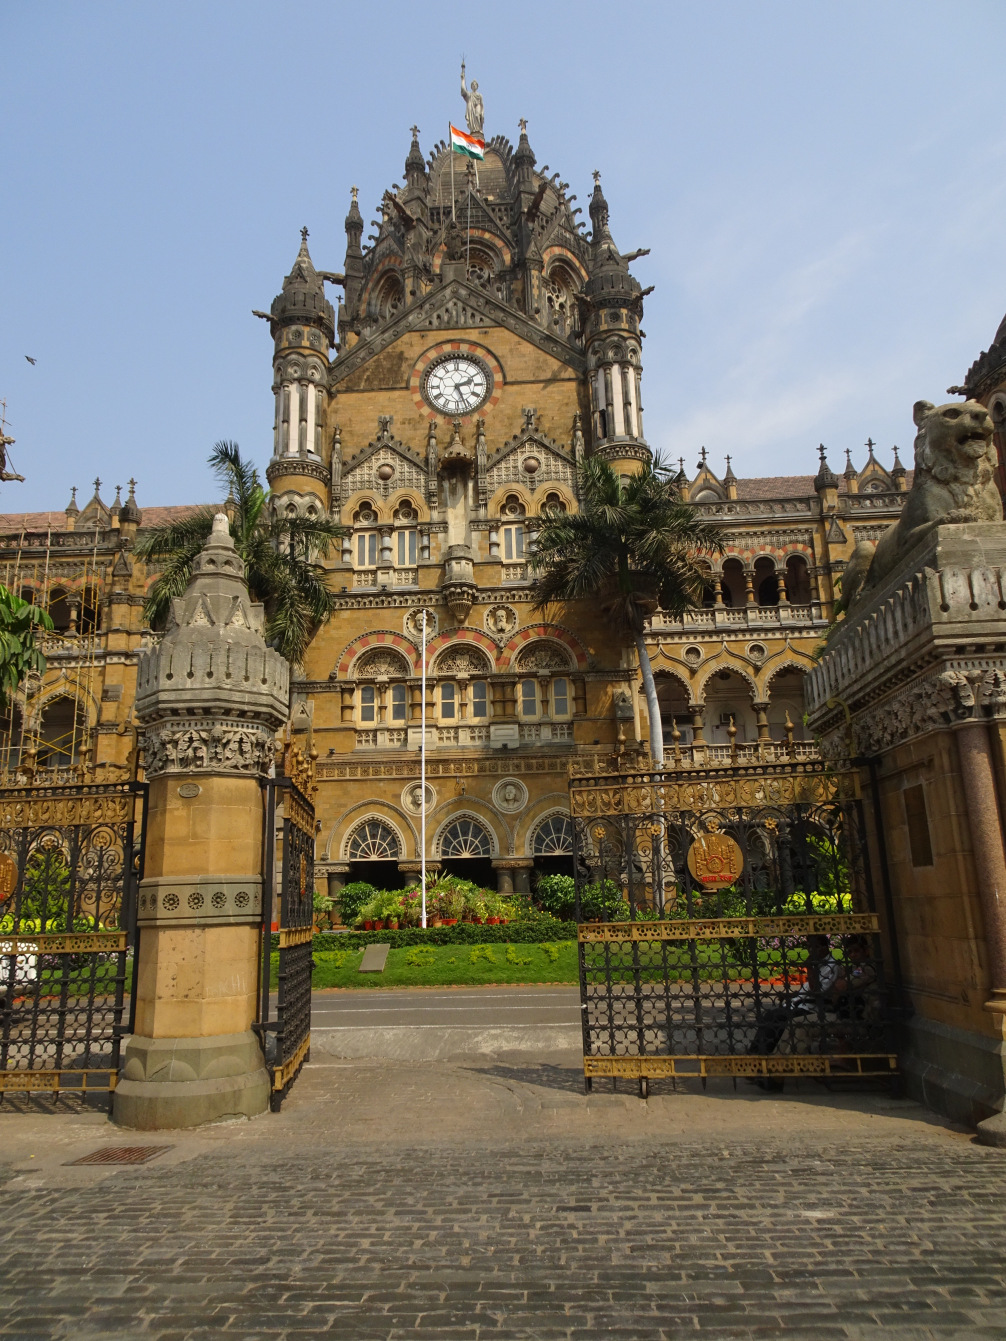 life of mumbai The need: poverty in india mumbai is home to 22 million people, and over 70% live in slums little autonomy in the household and bad quality of life.